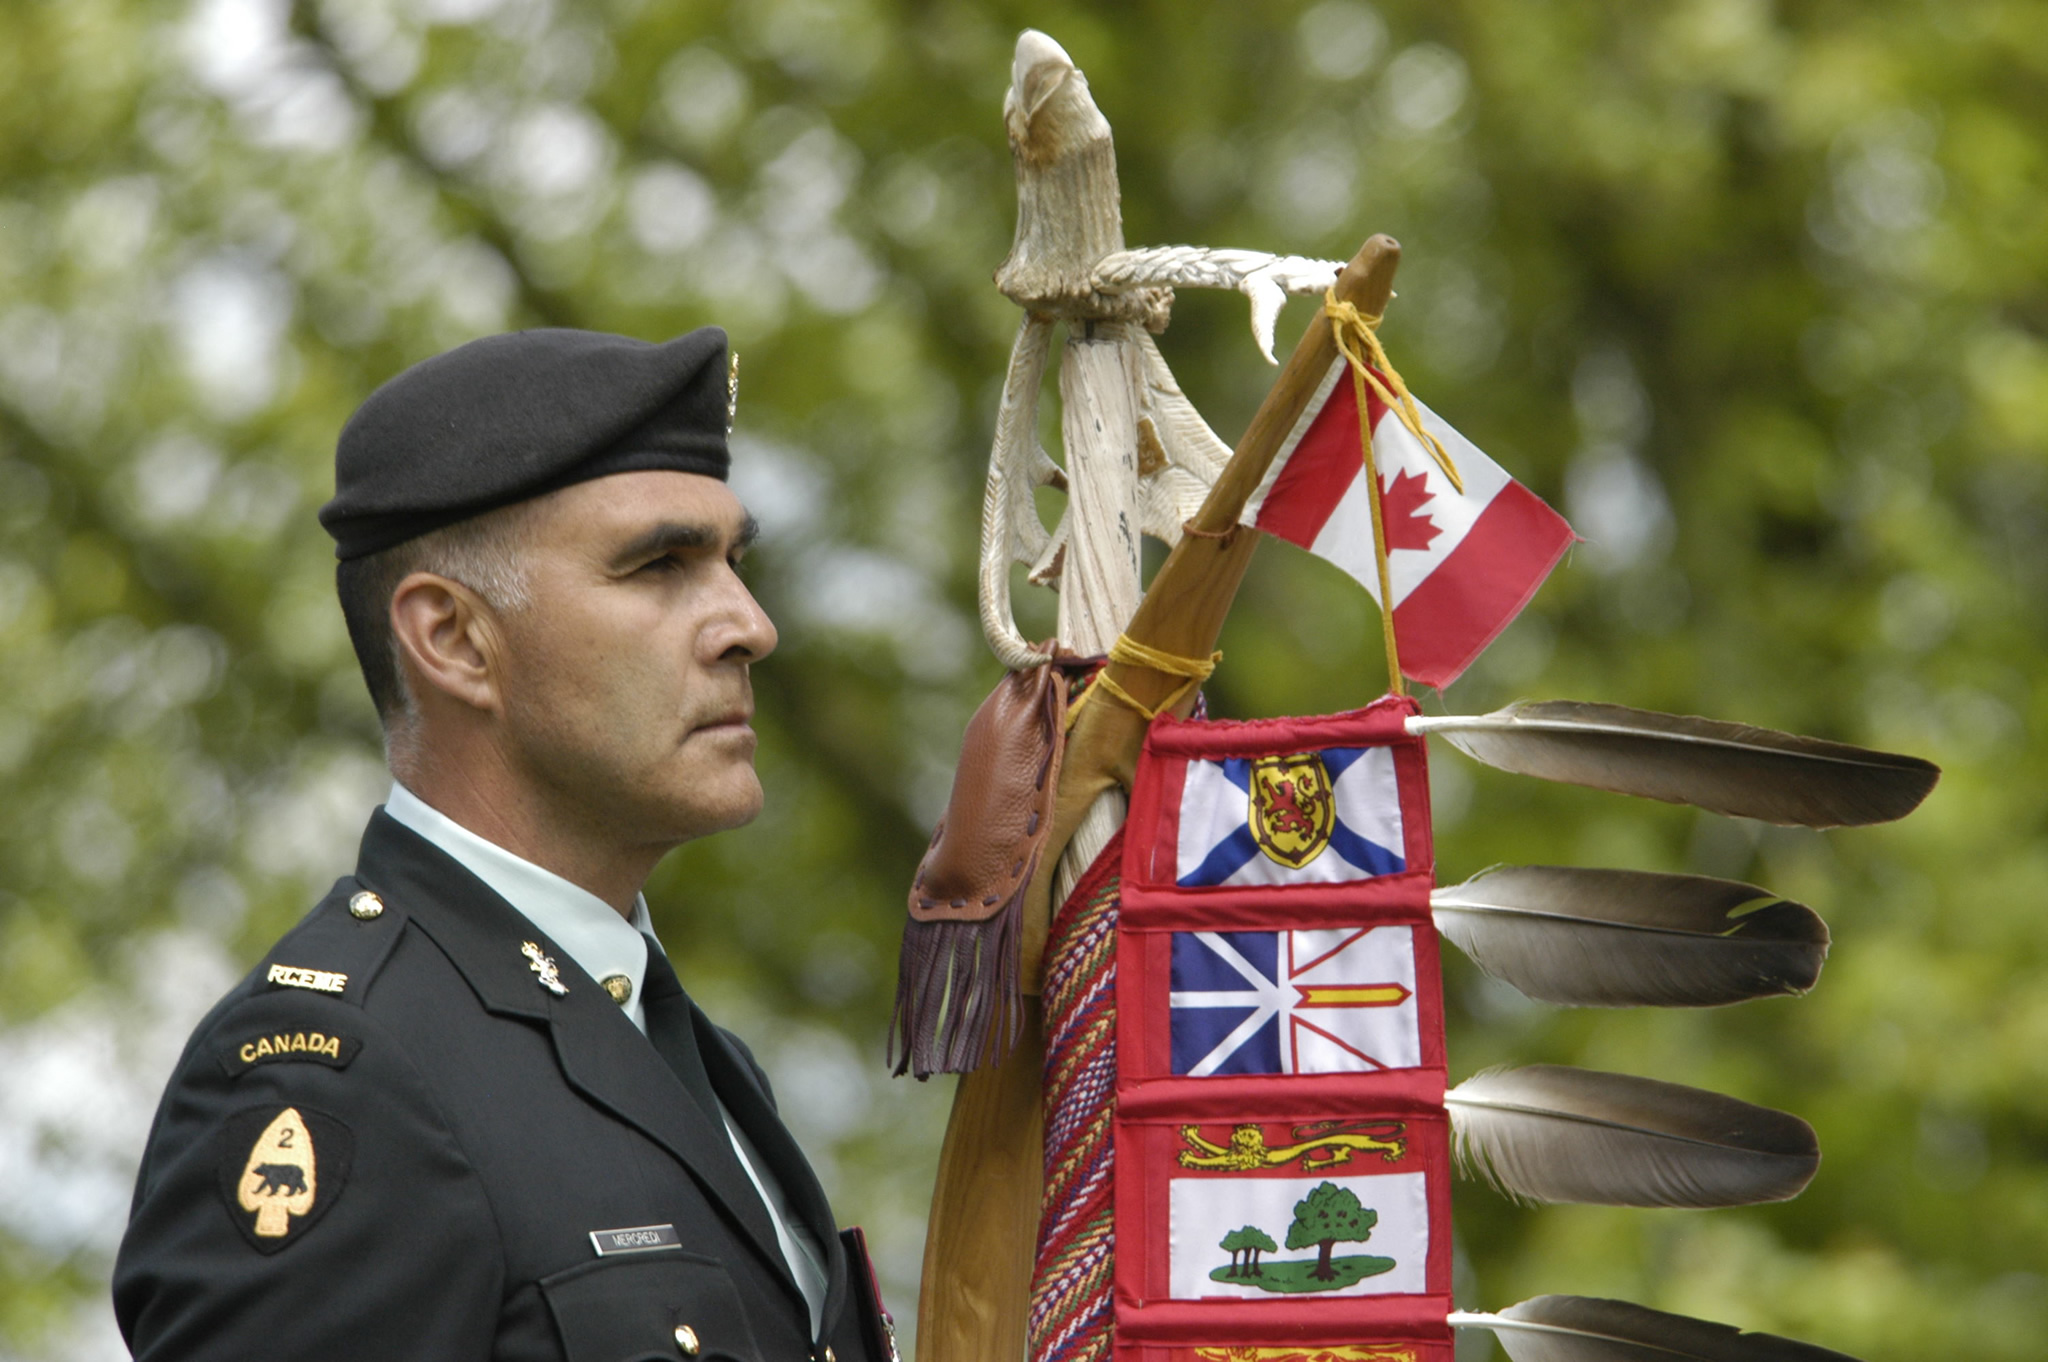 Master Warrant Officer Stanley Mercredi proudly carries the Eagle Staff during the commemoration of the 100th Anniversary of Beaumont-Hamel and the Battle of the Somme. (Photo: Captain Thomas Cameron Edelson, Canadian Joint Operations Command Public Affairs)